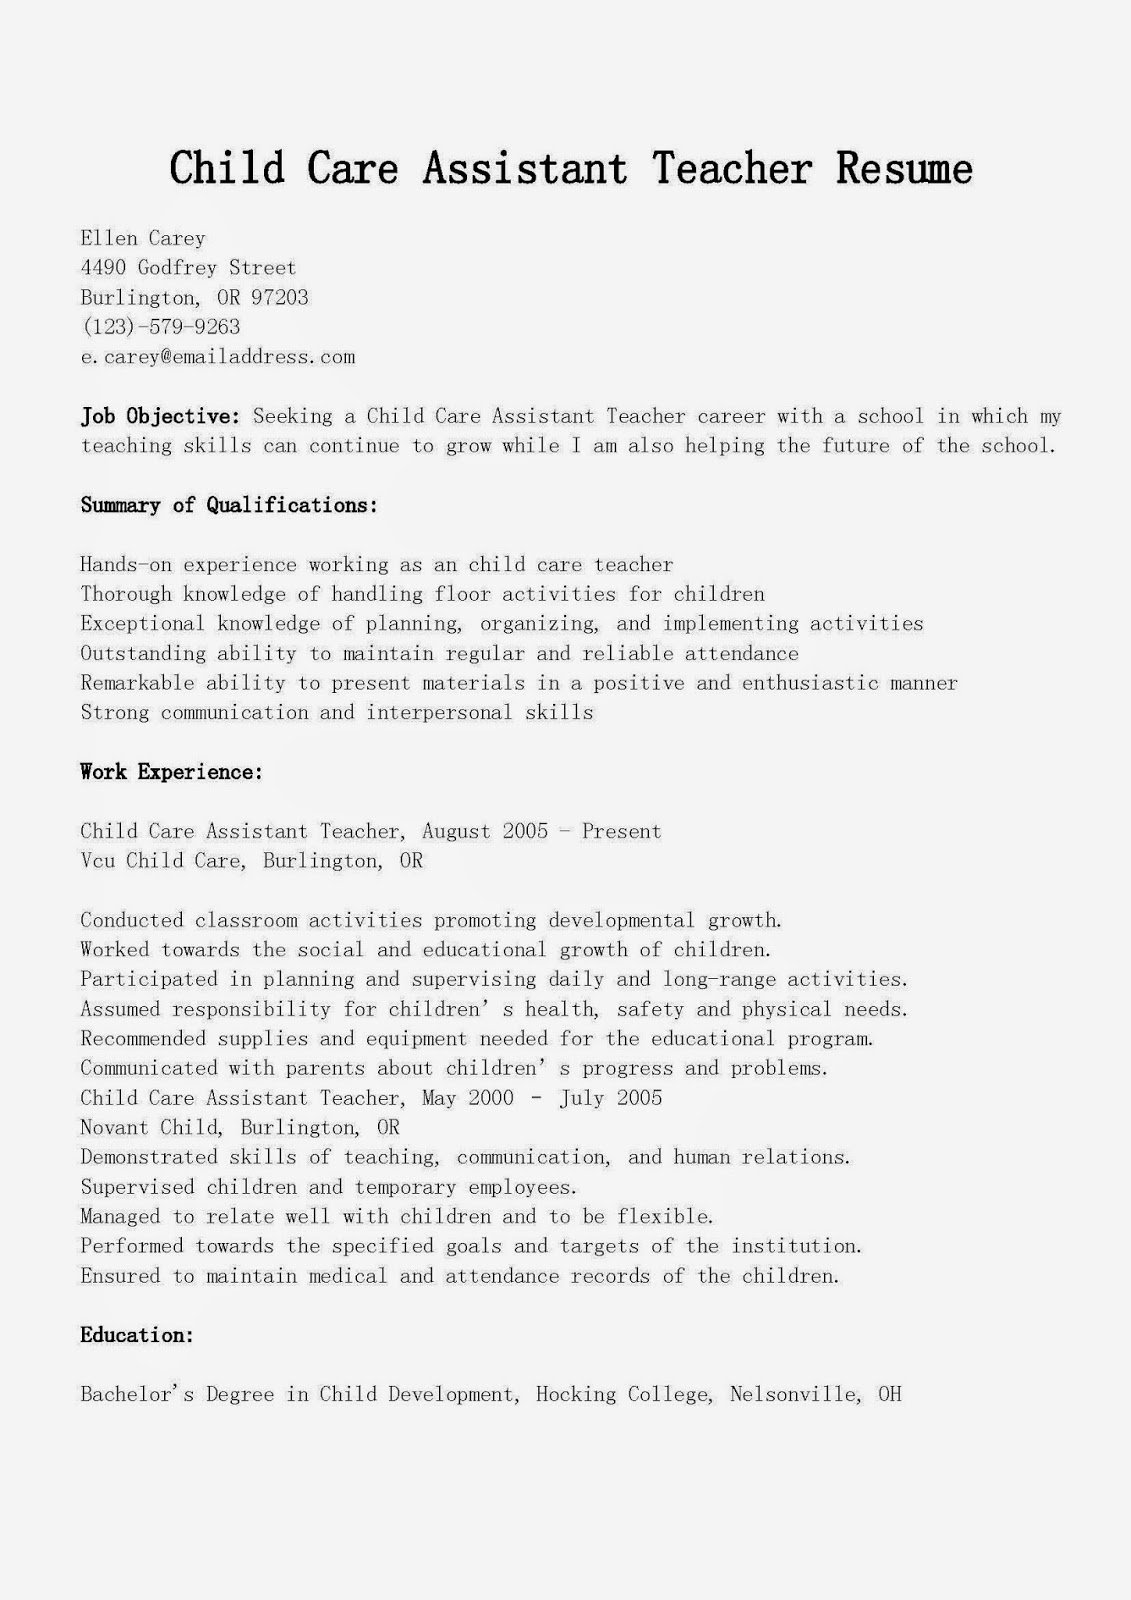 Child Care Resume Template Inspirational Resume Samples Child Care assistant Teacher Resume Sample